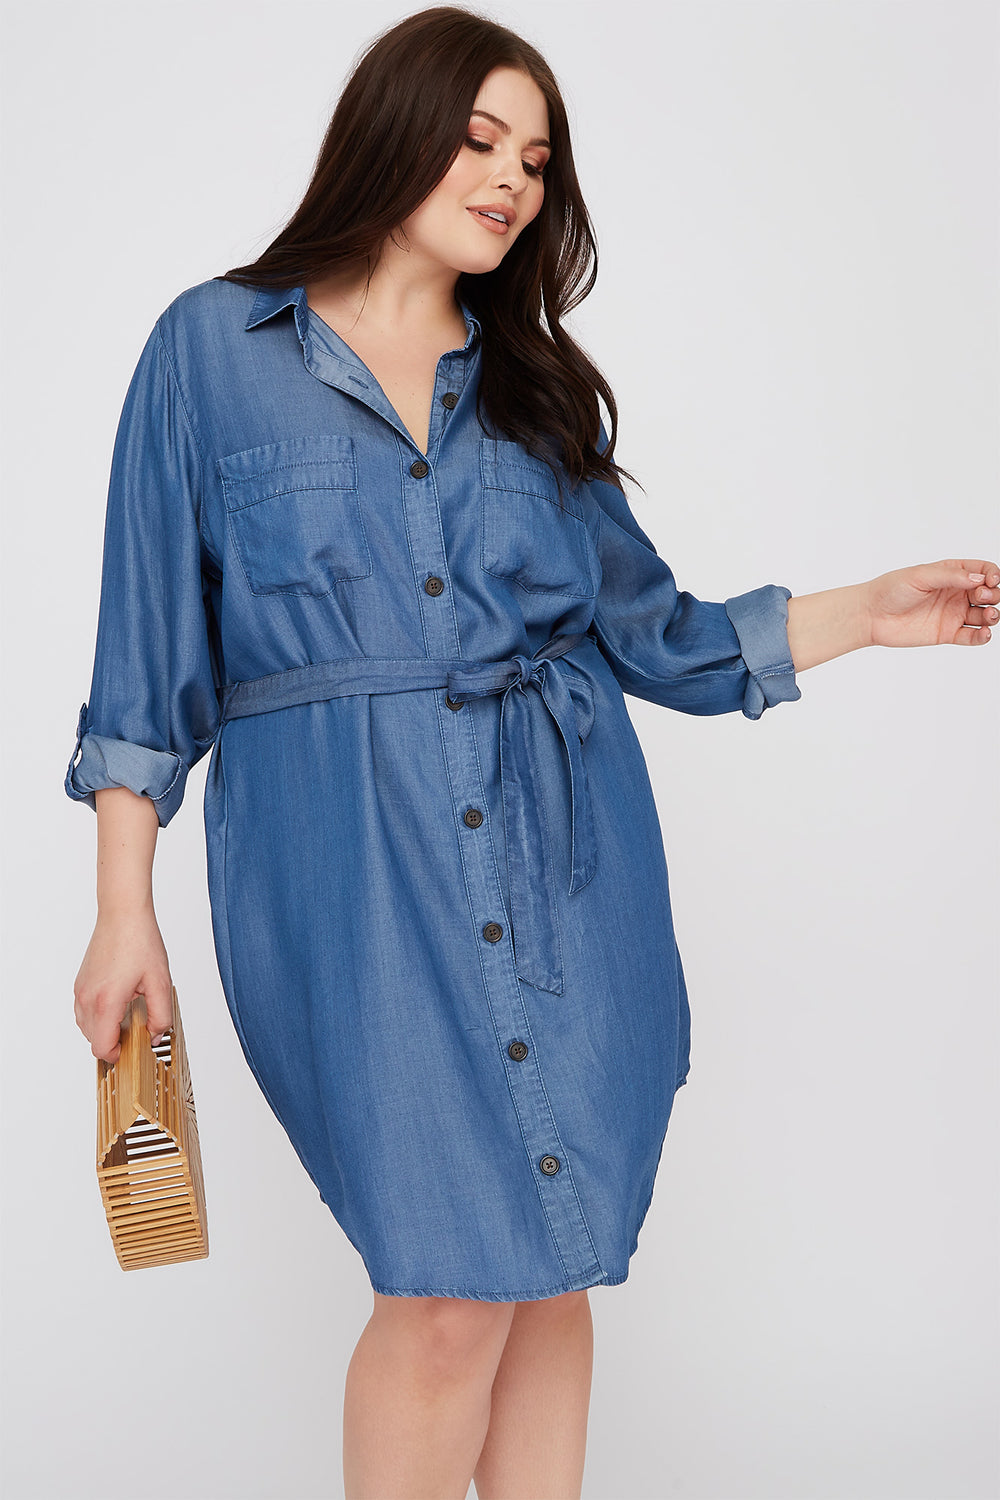 Plus Size Chambray Button-Up Shirt Dress – Charlotte Russe